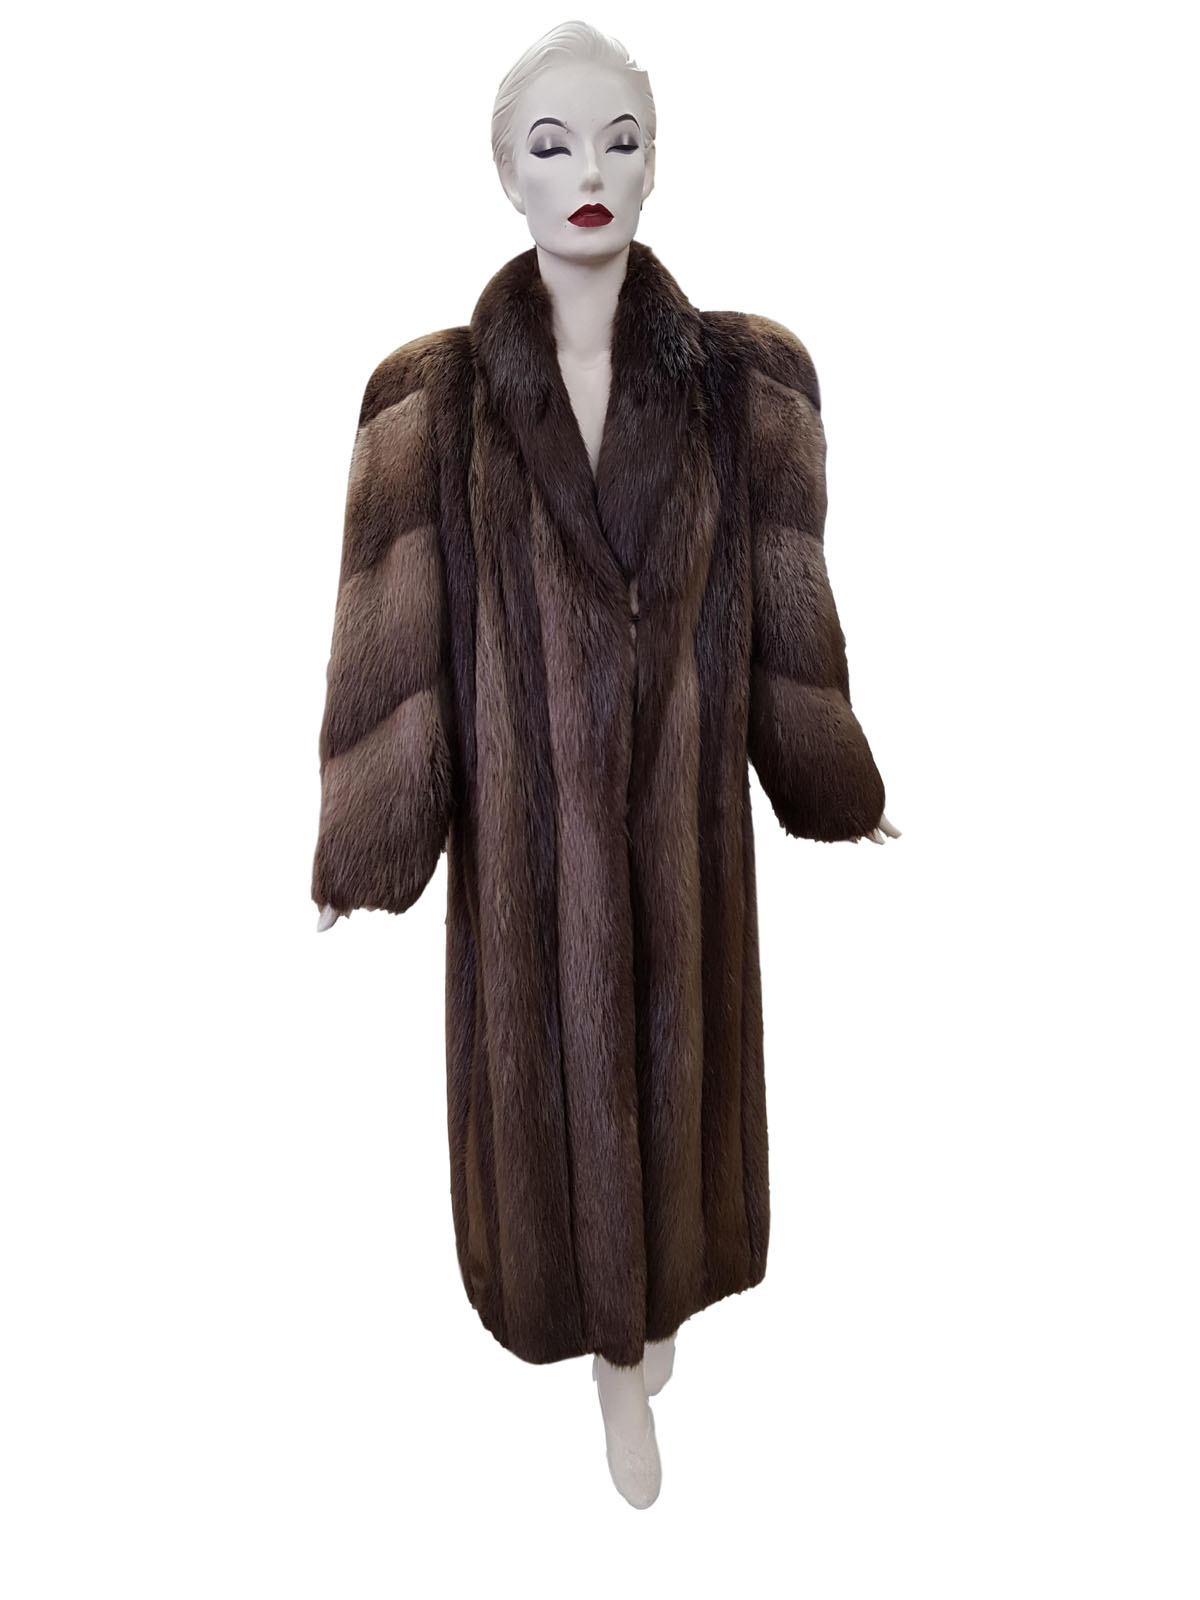 Natural Brown Long Hair Beaver Coat with Diagonal Sleeve Design